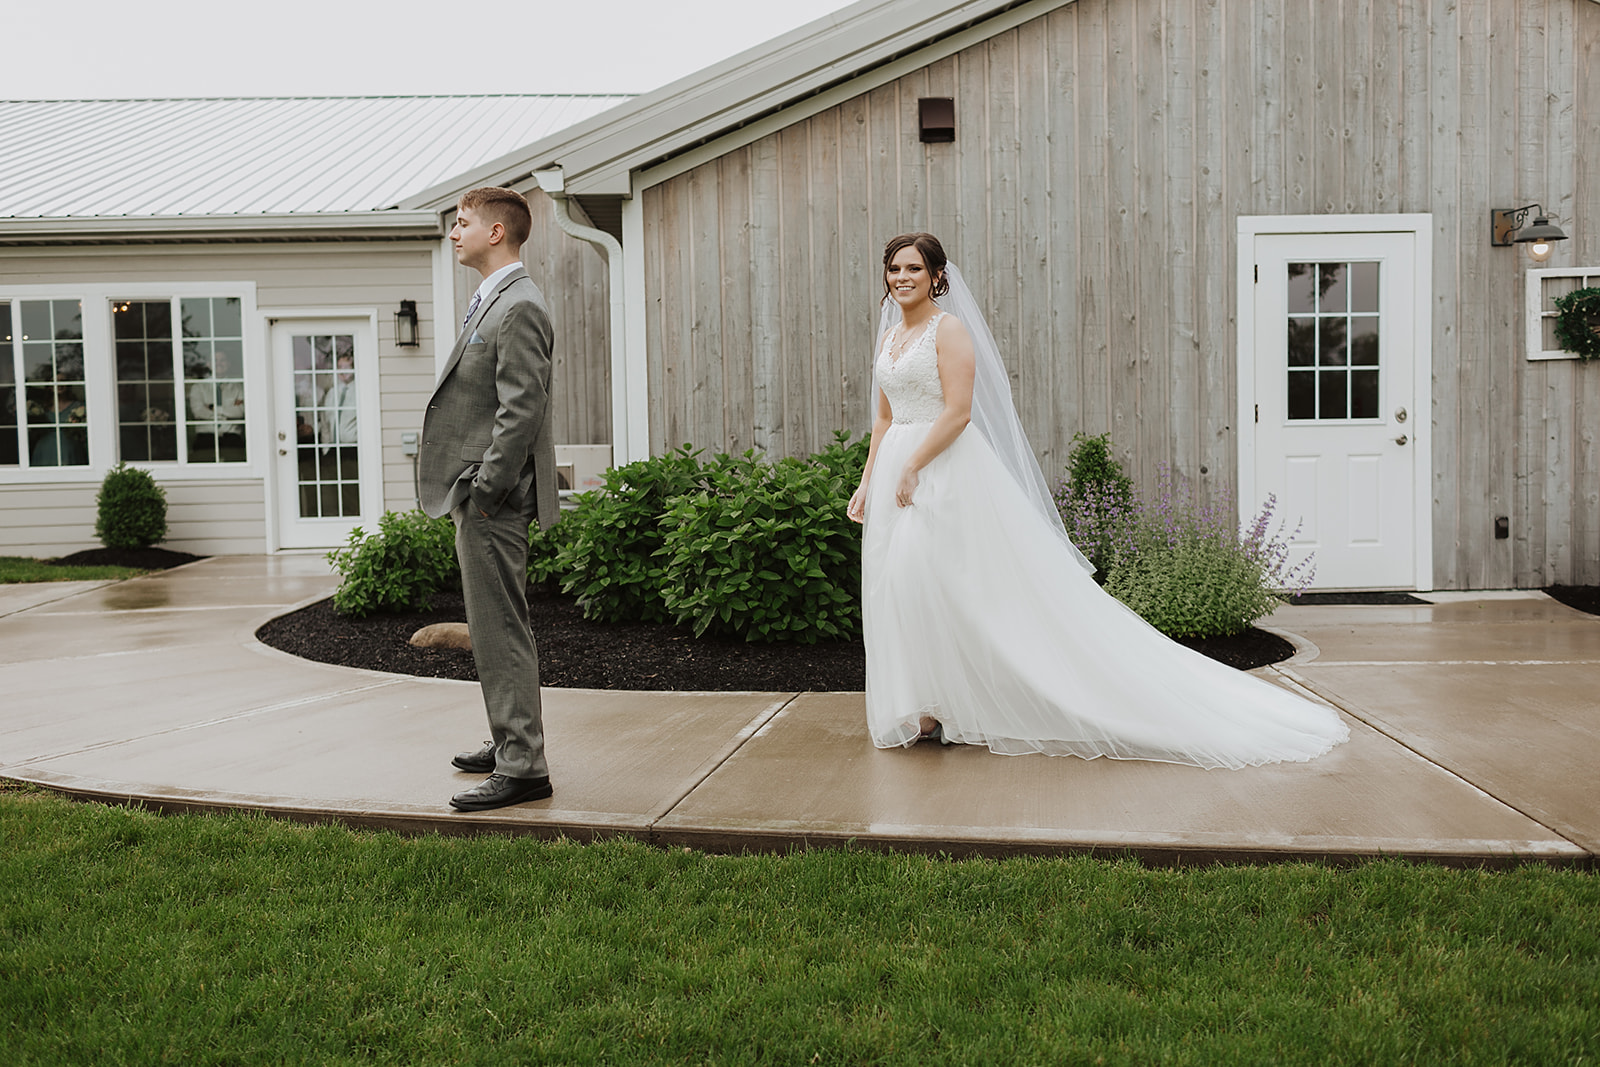 Kendra_and_Mattew_Indiana_Wedding_by_Emily_Wehner-201.jpg